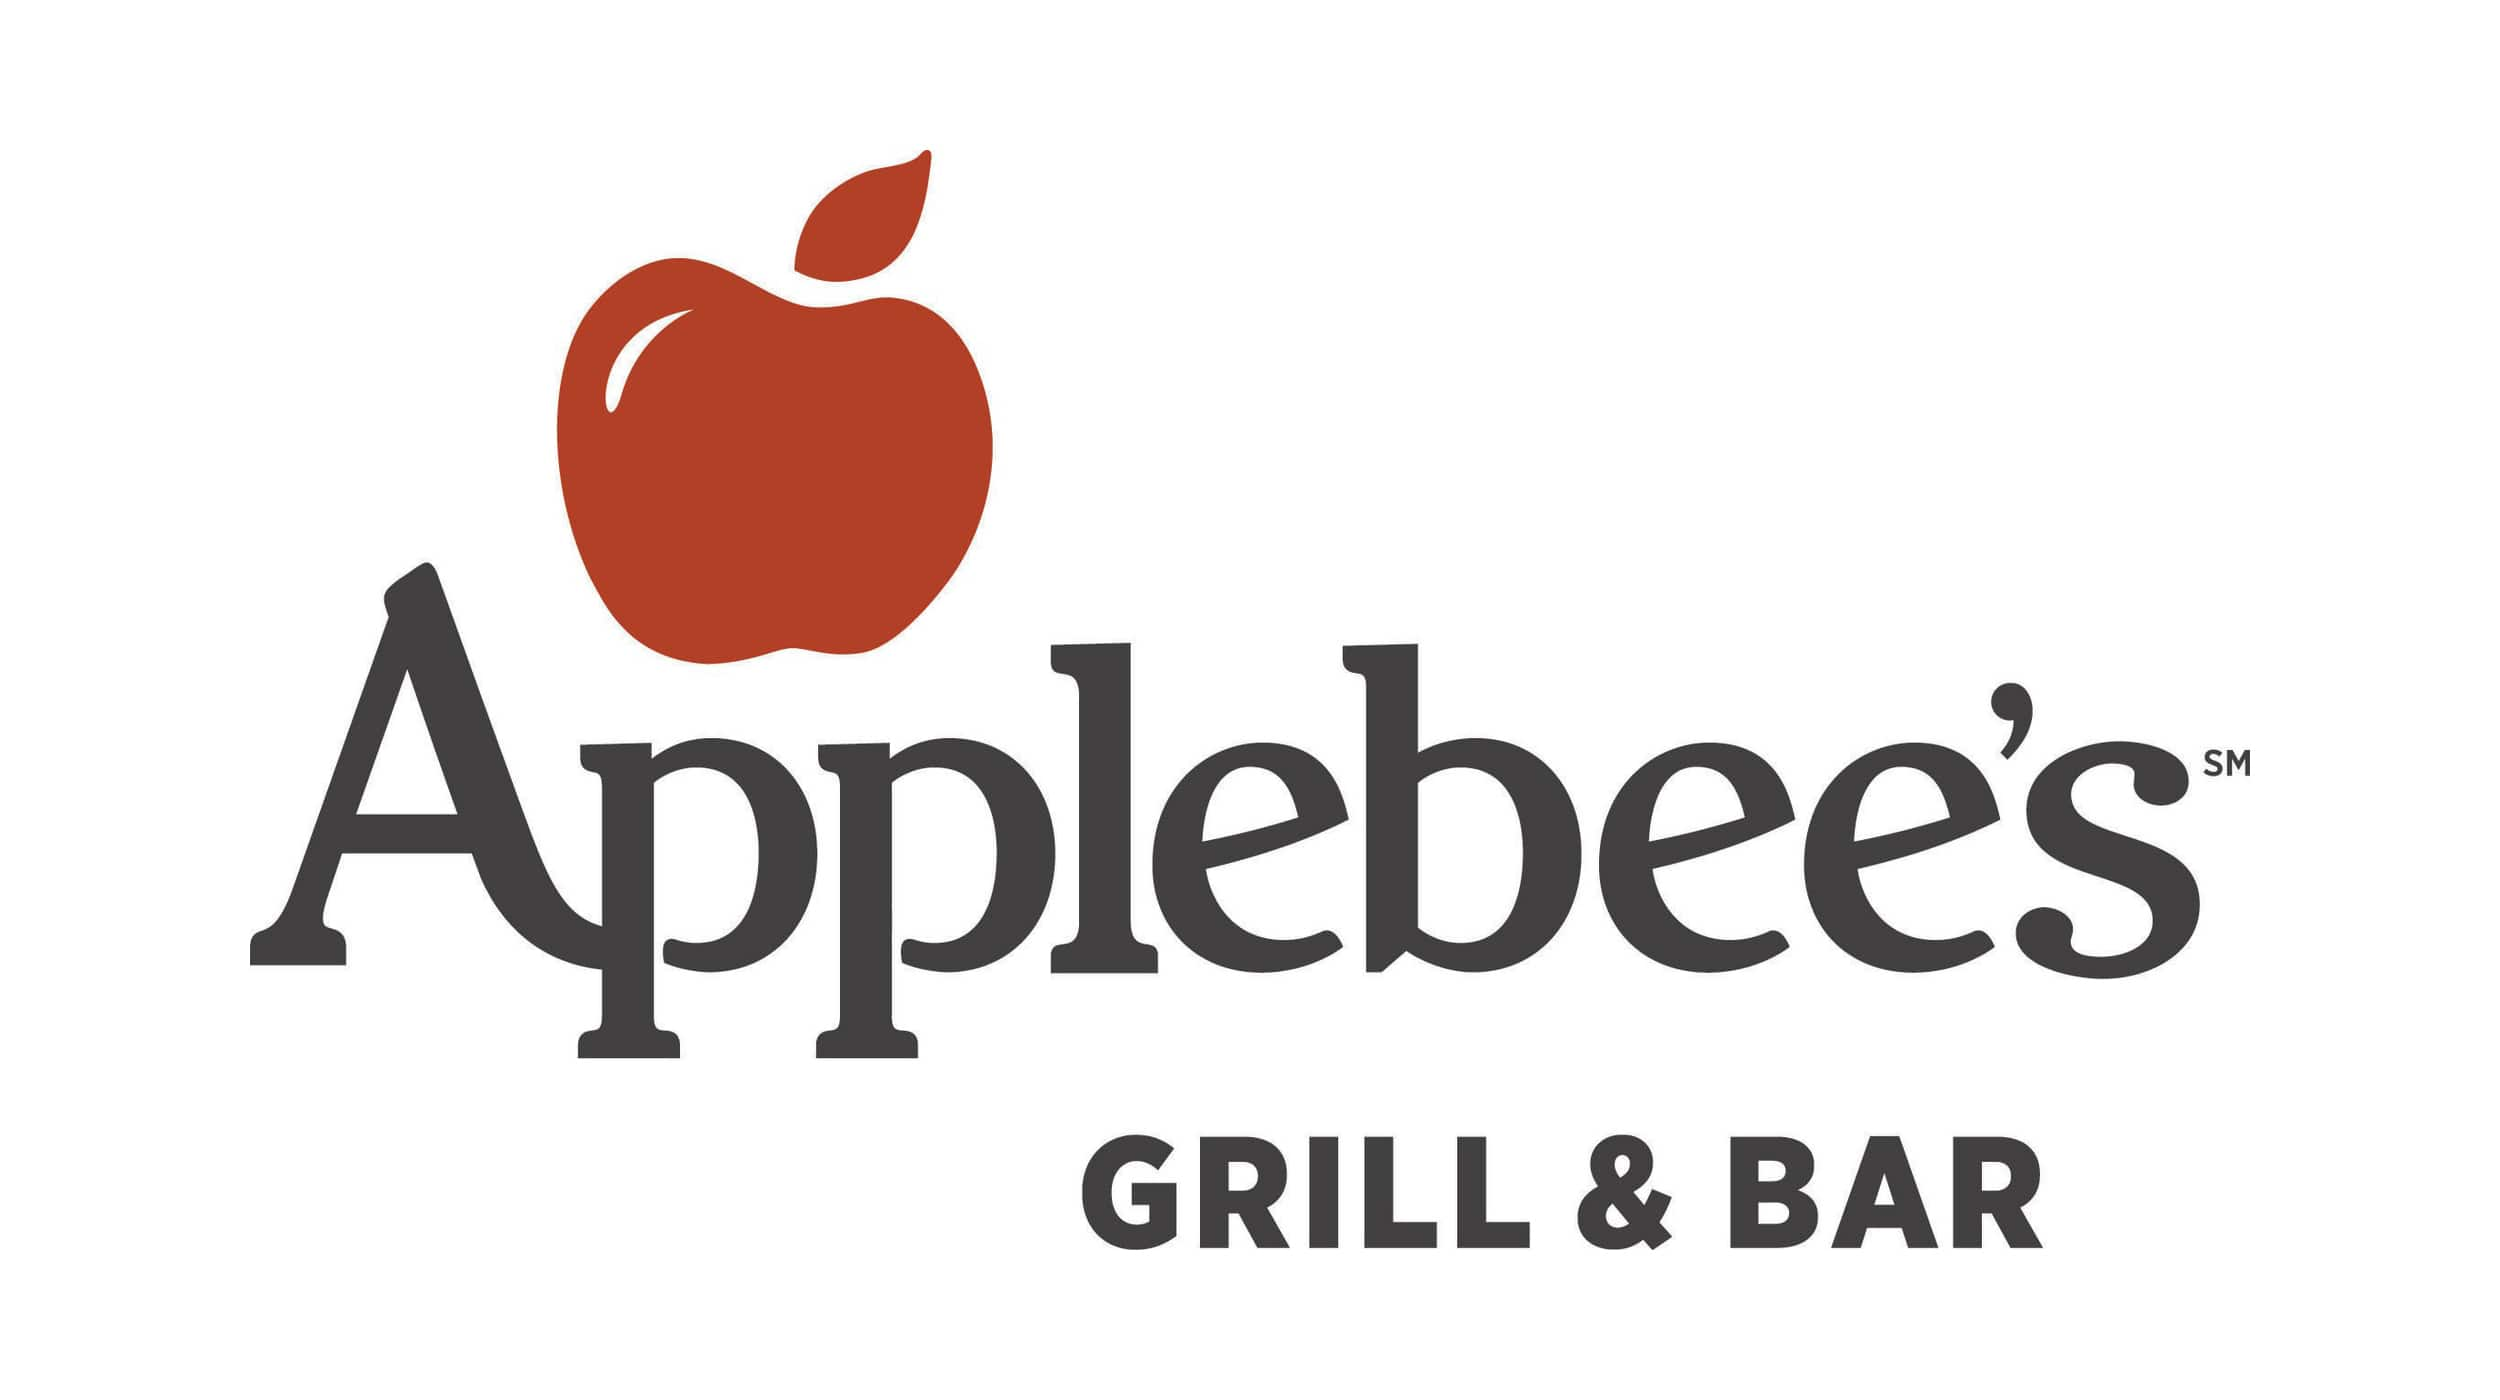 Applebee's - Get wasted on $1 Long Island Ice Teas whole month of December